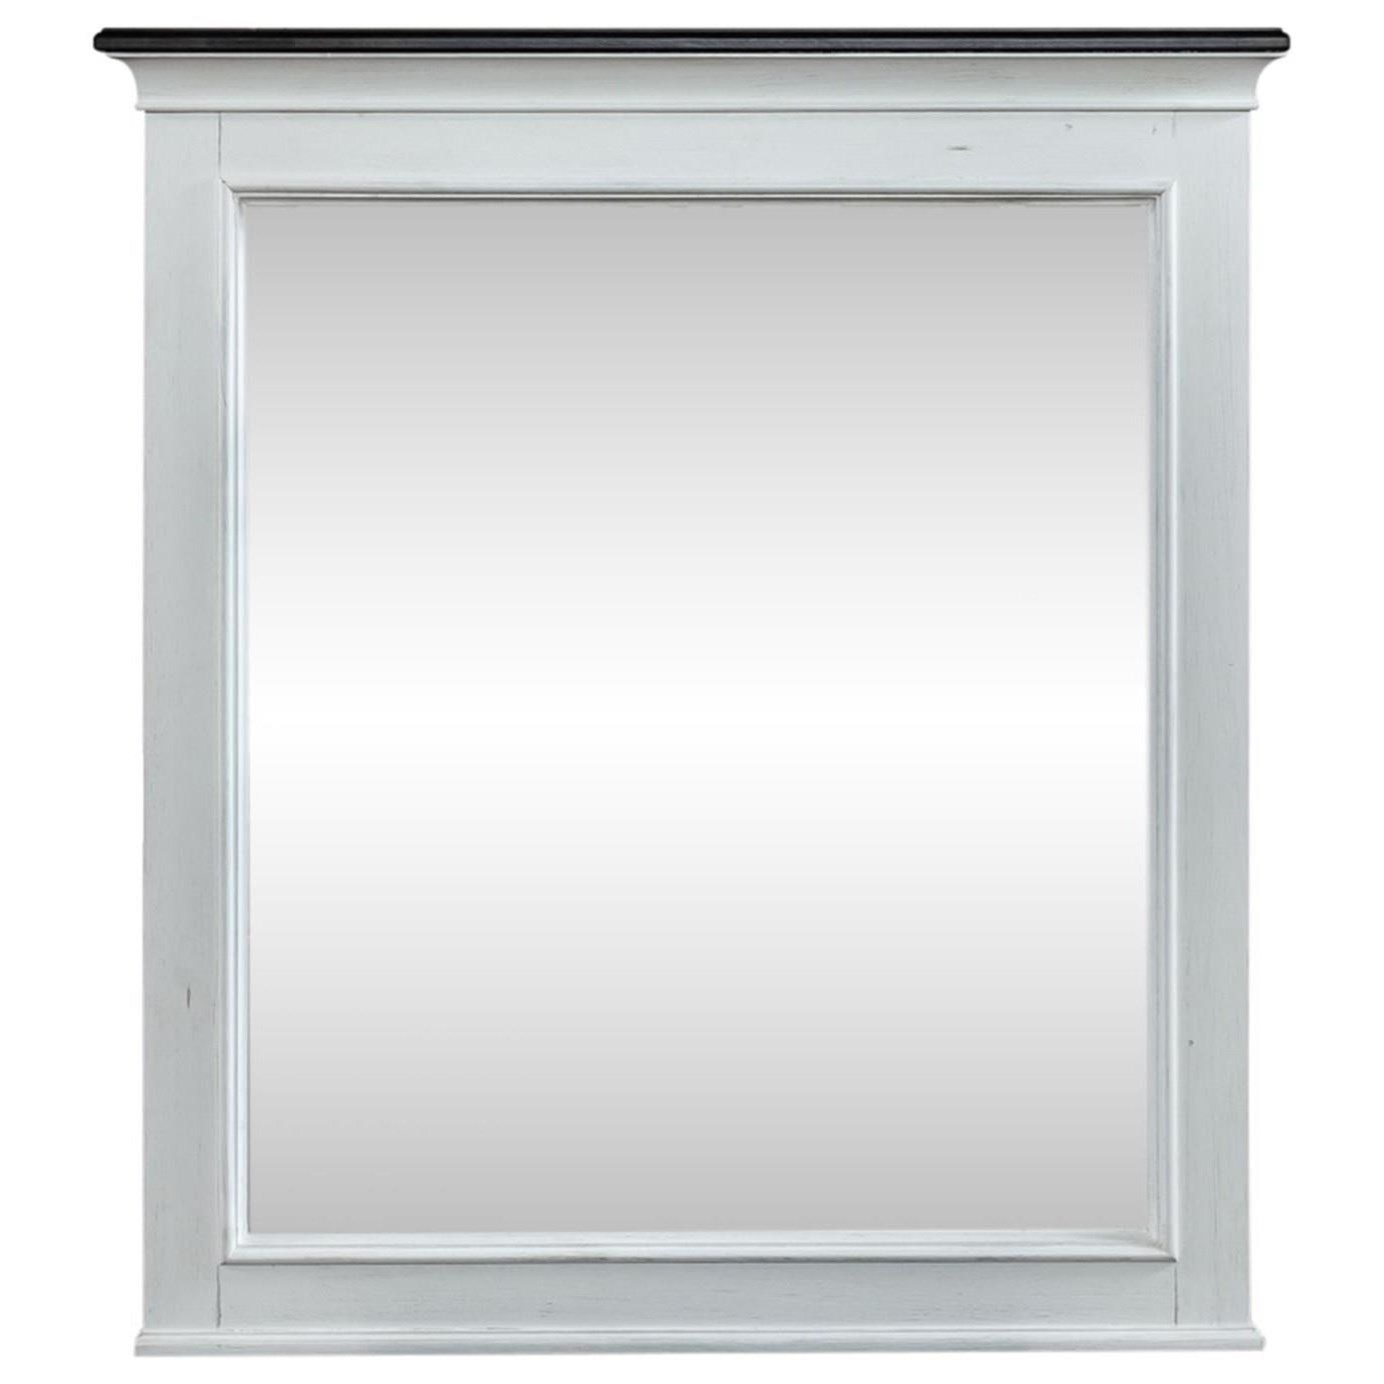 Allyson Park Crown Mirror by Liberty Furniture at Furniture and ApplianceMart